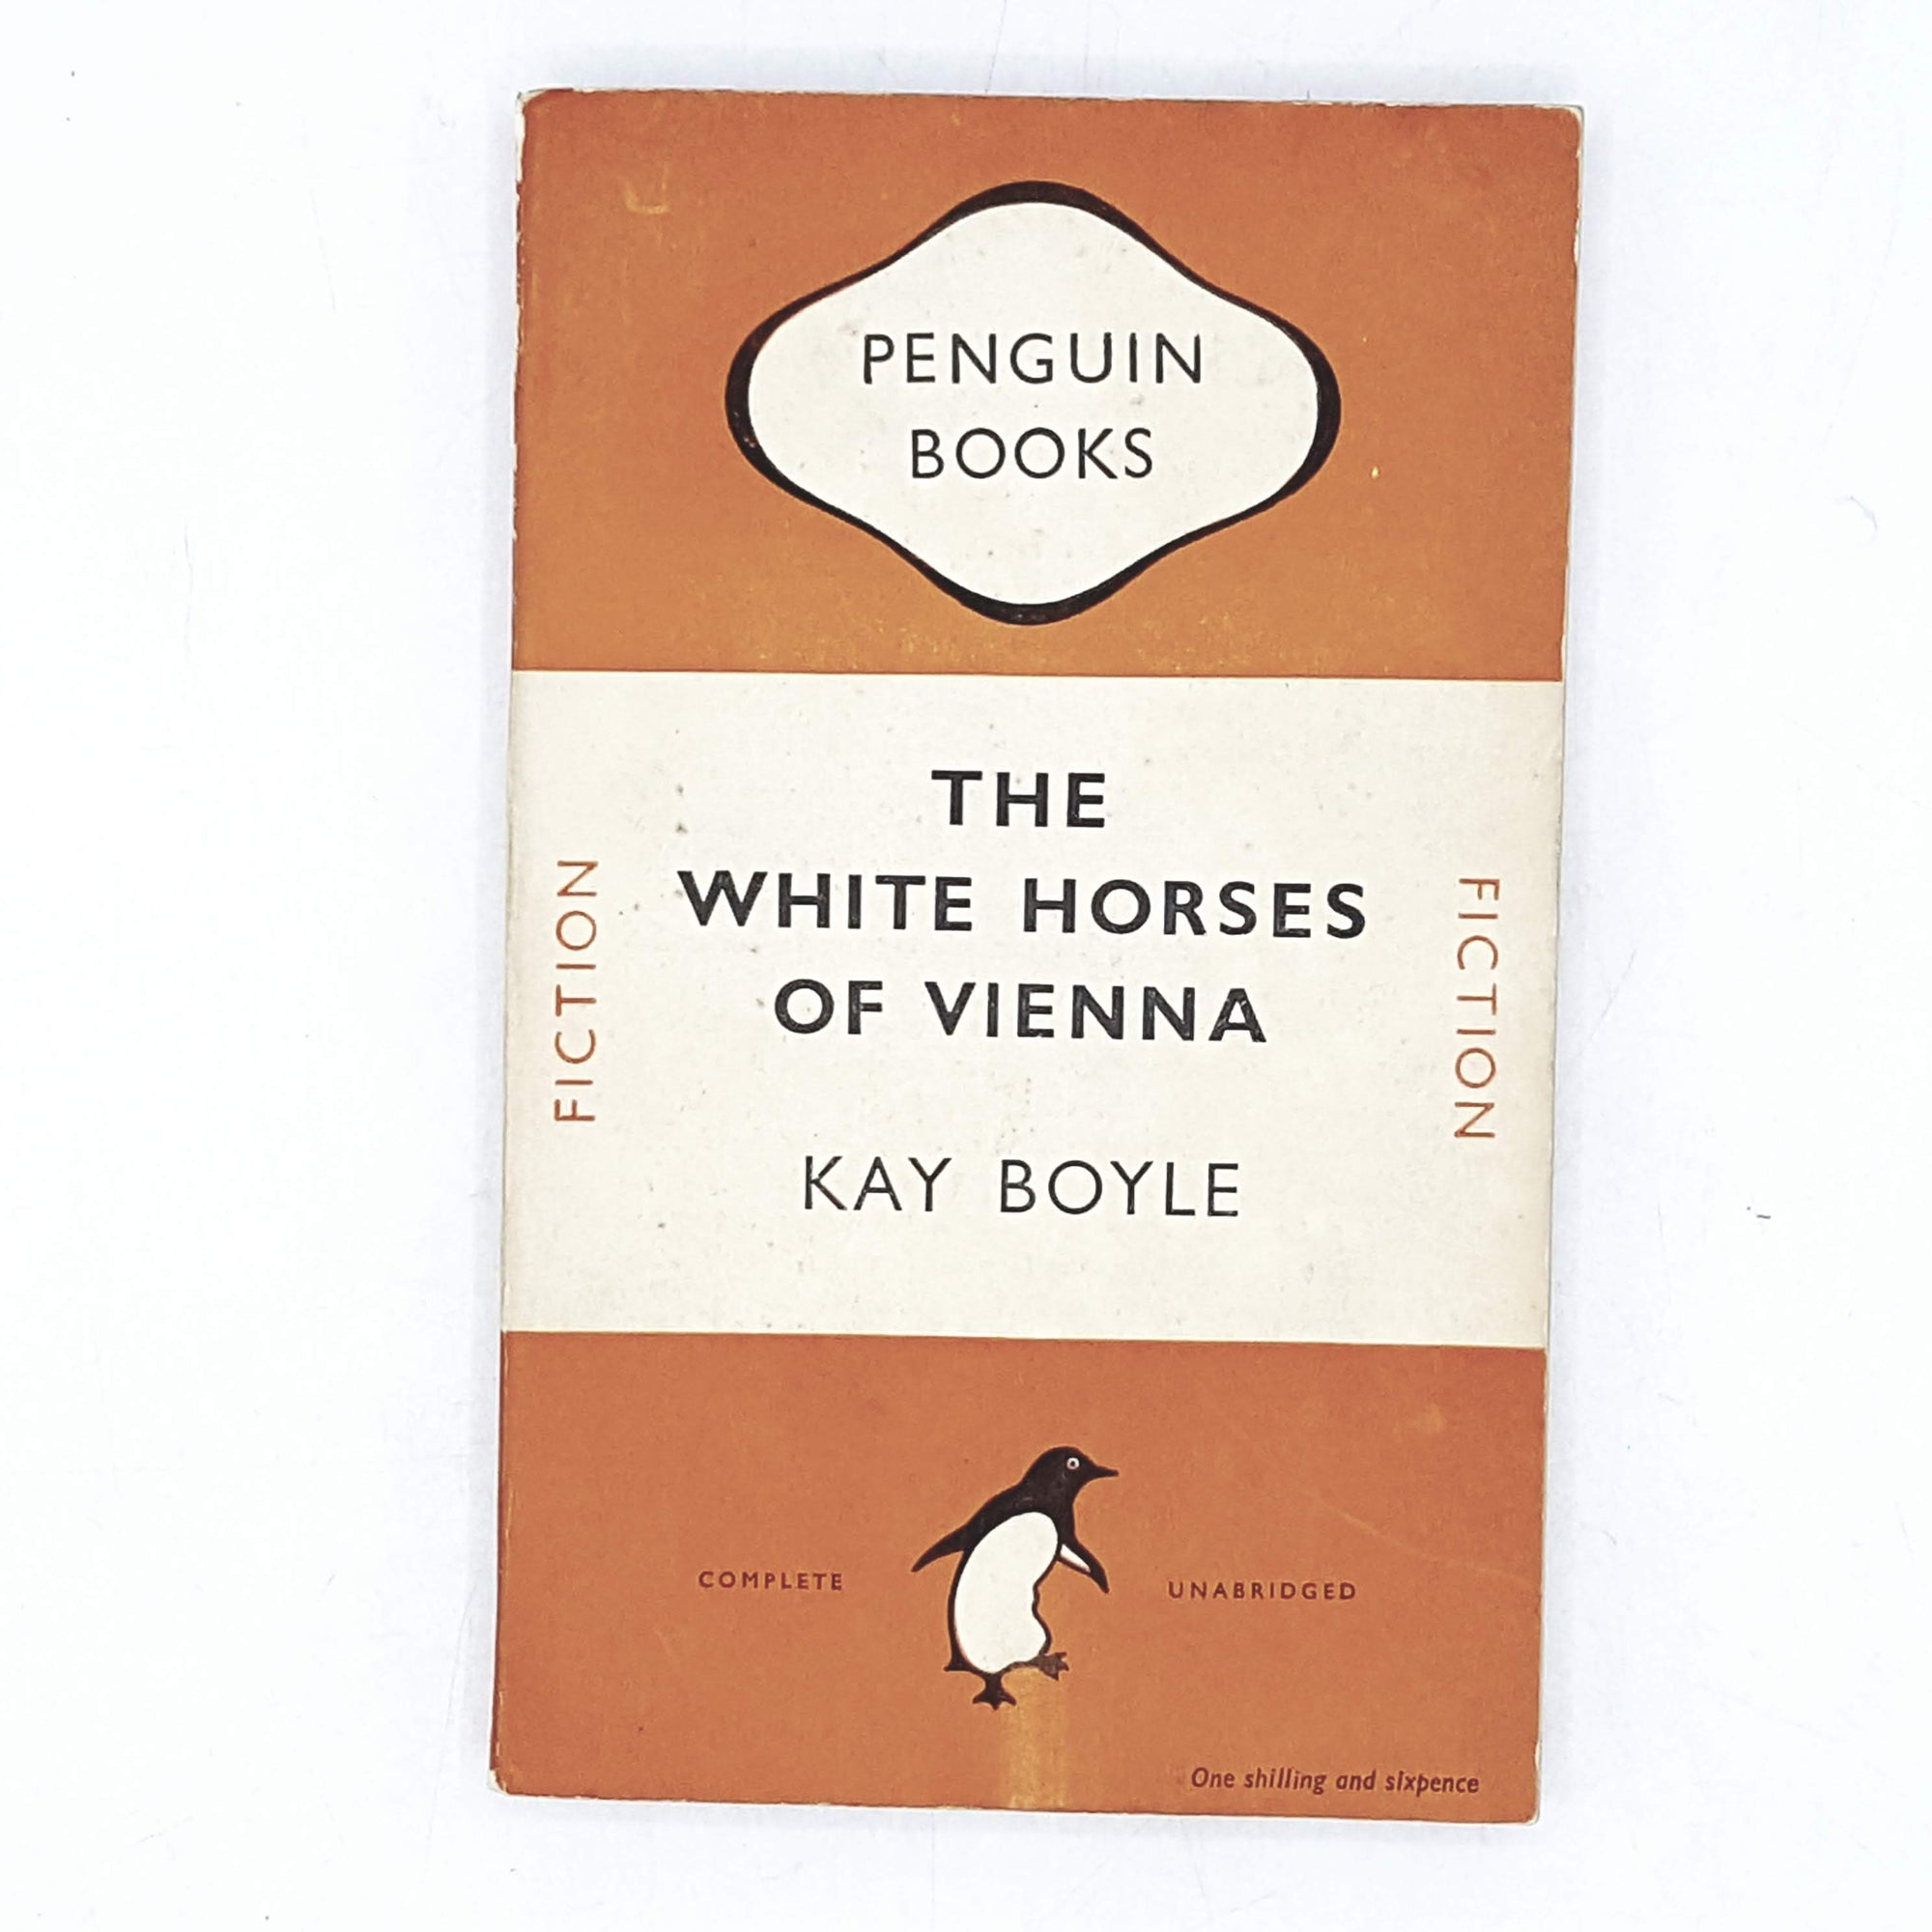 Vintage Penguin The White Horses of Veinna by Kay Boyle 1949